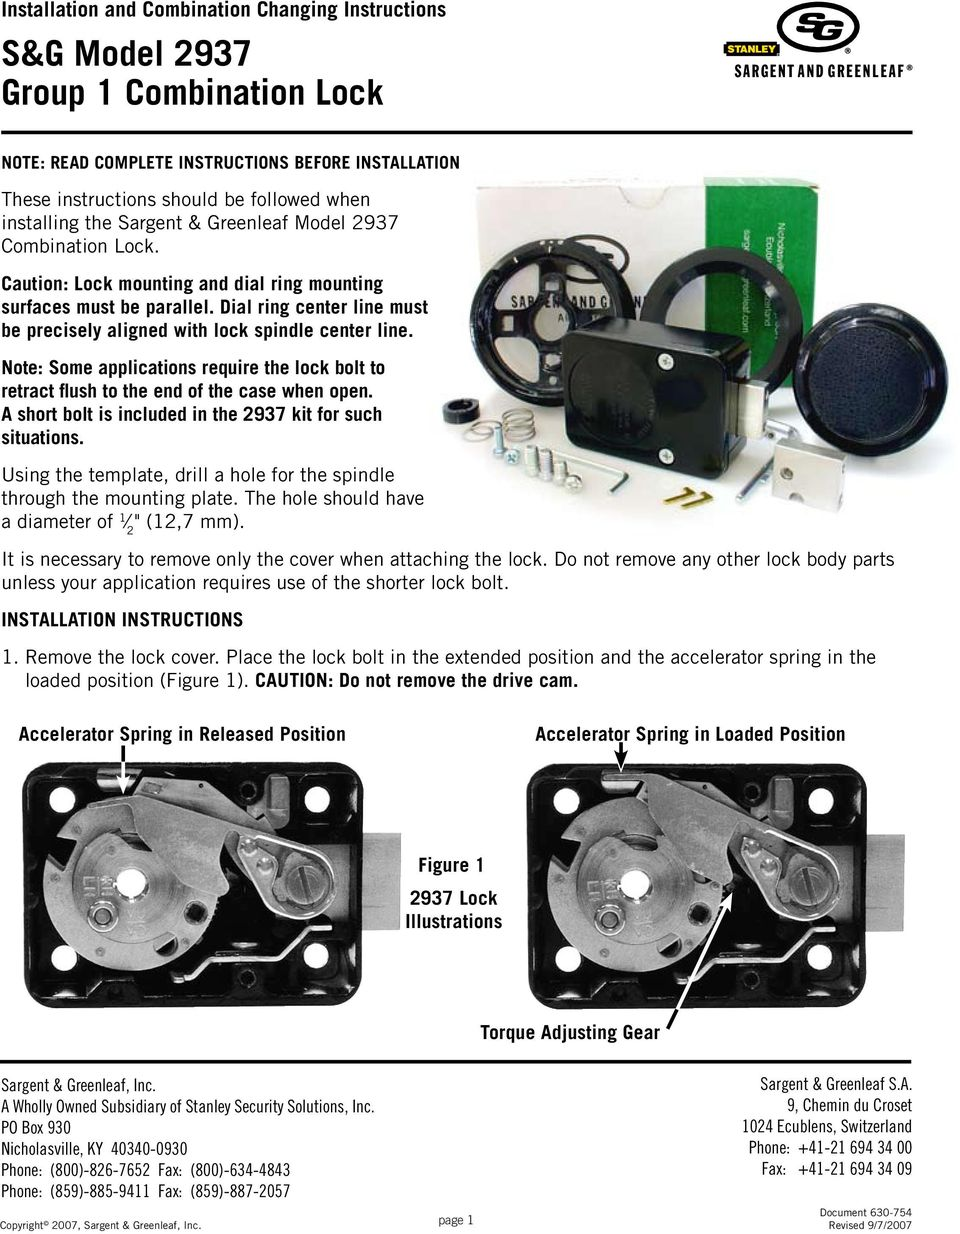 Sg Model 2937 Group 1 Combination Lock Pdf Diagram Dial Ring Center Line Must Be Precisely Aligned With Spindle Note